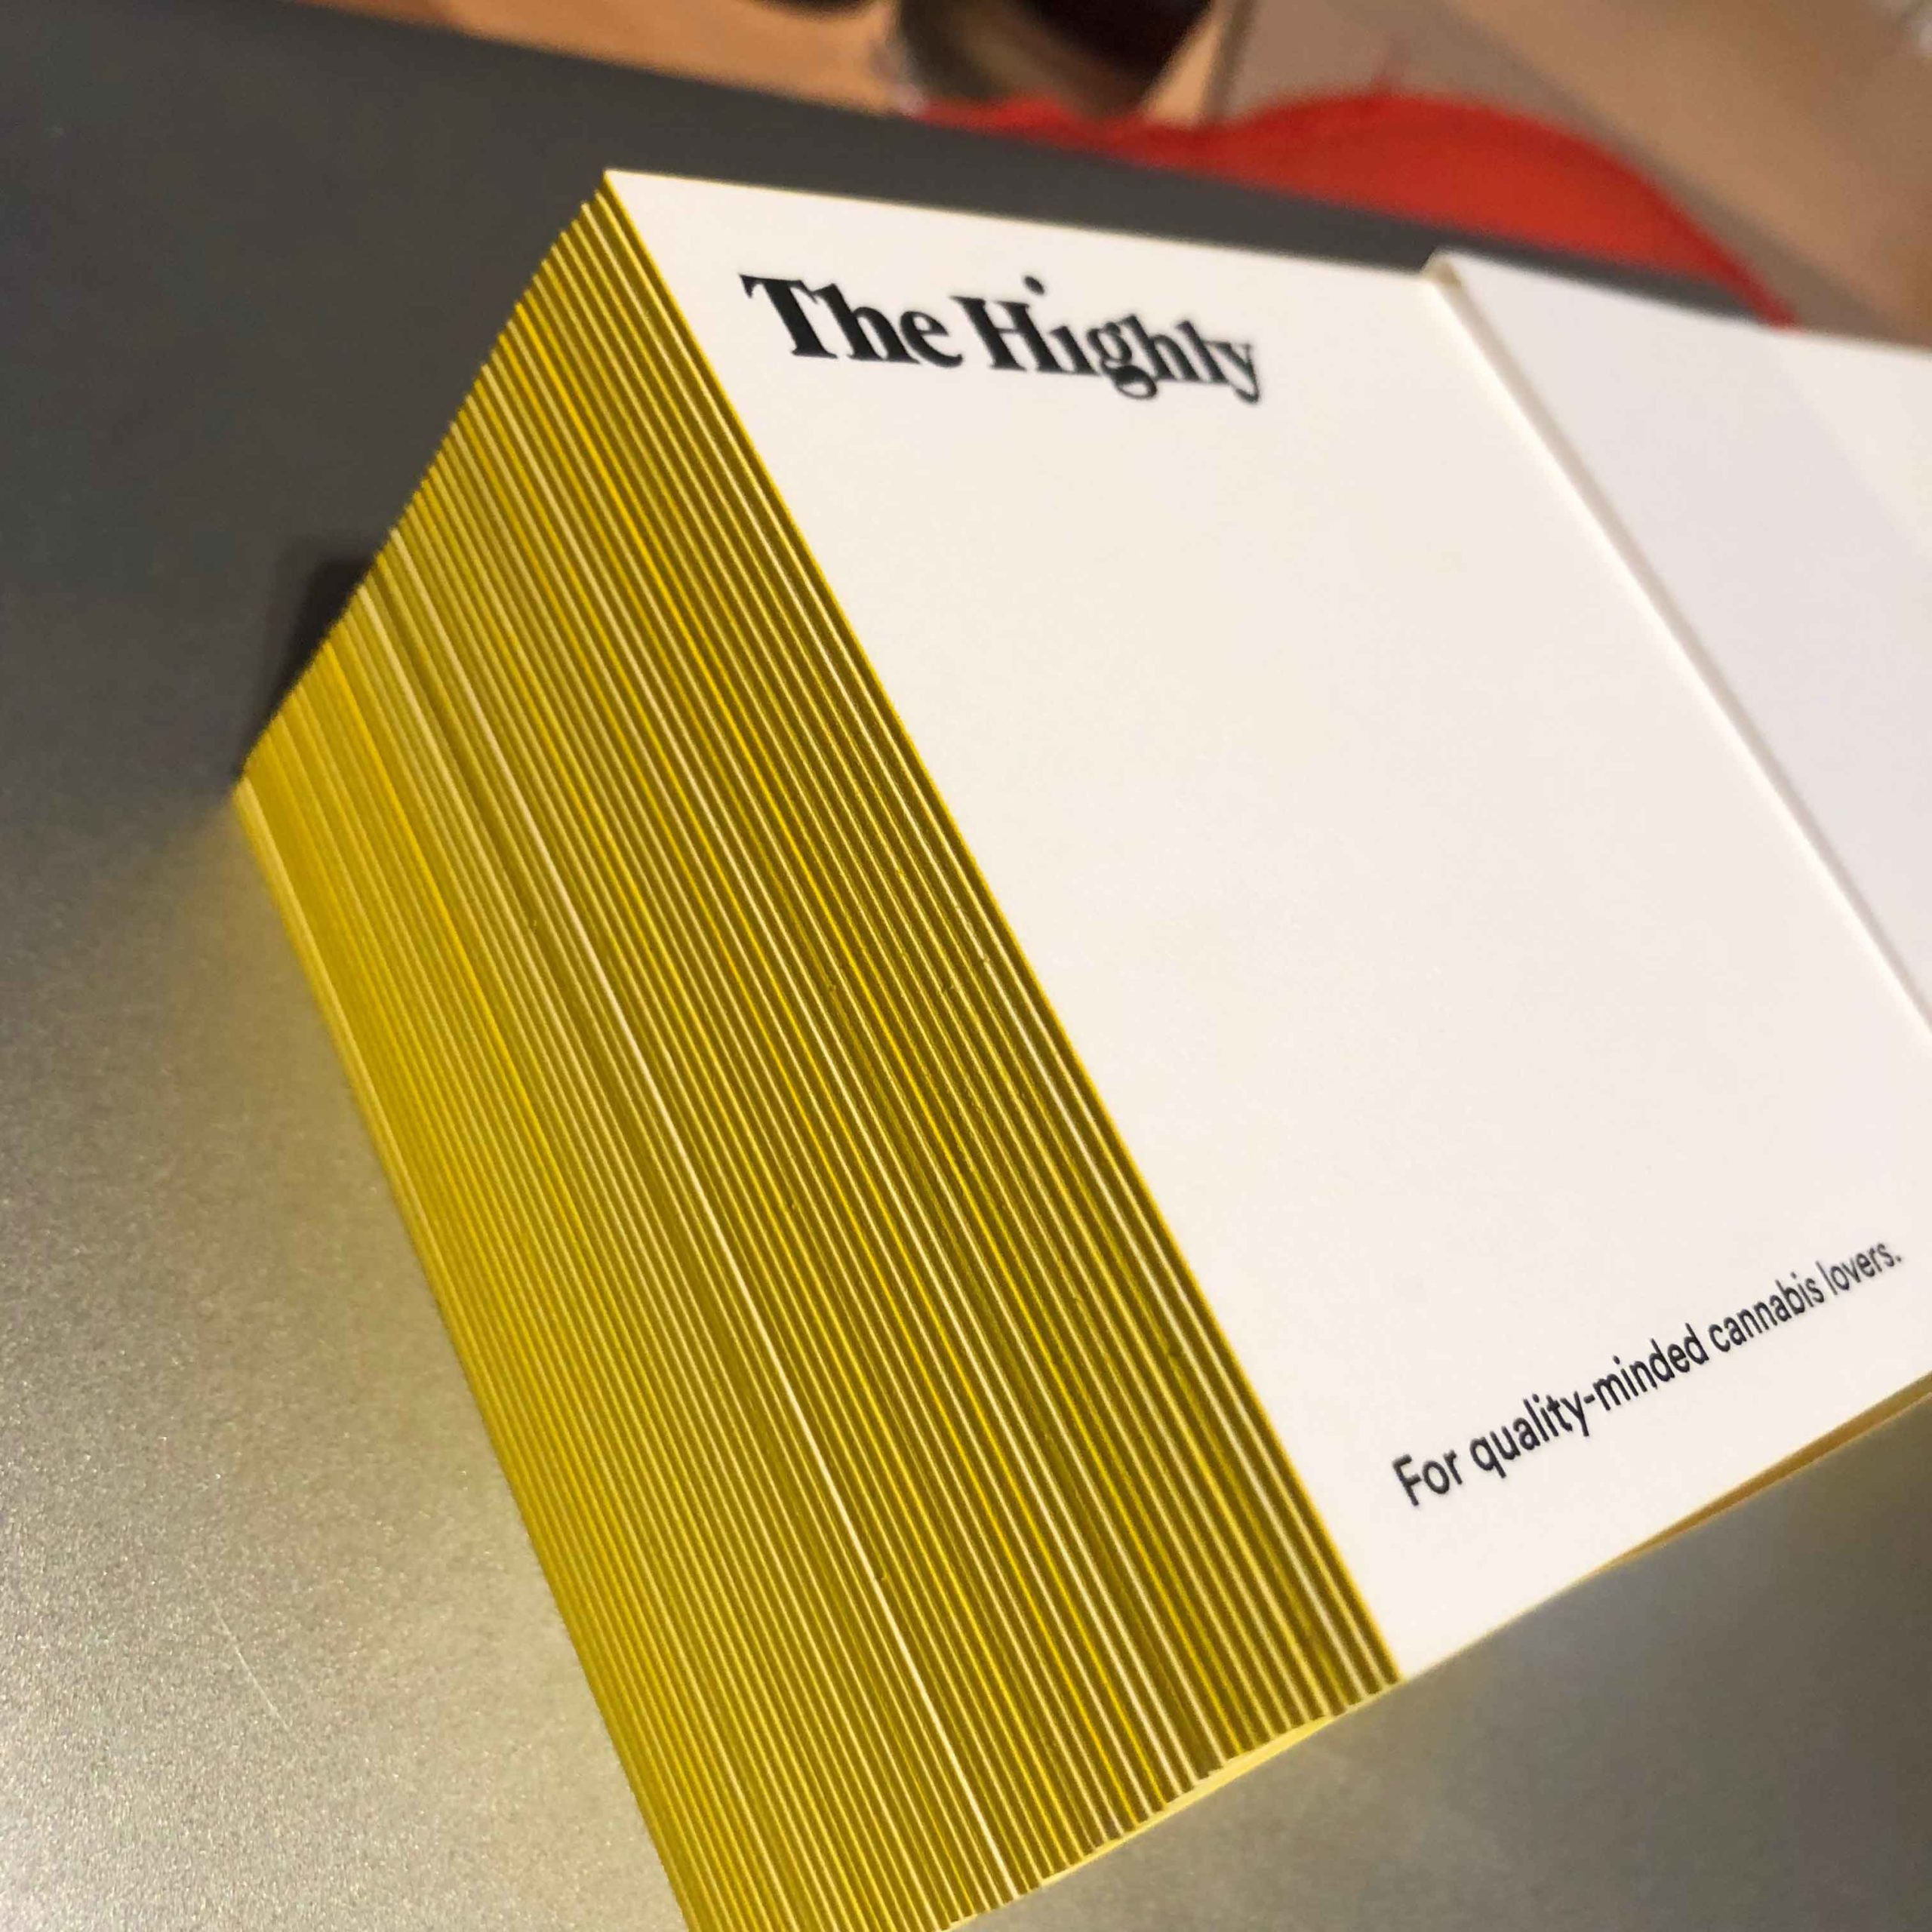 THE HIGHLY – Branding